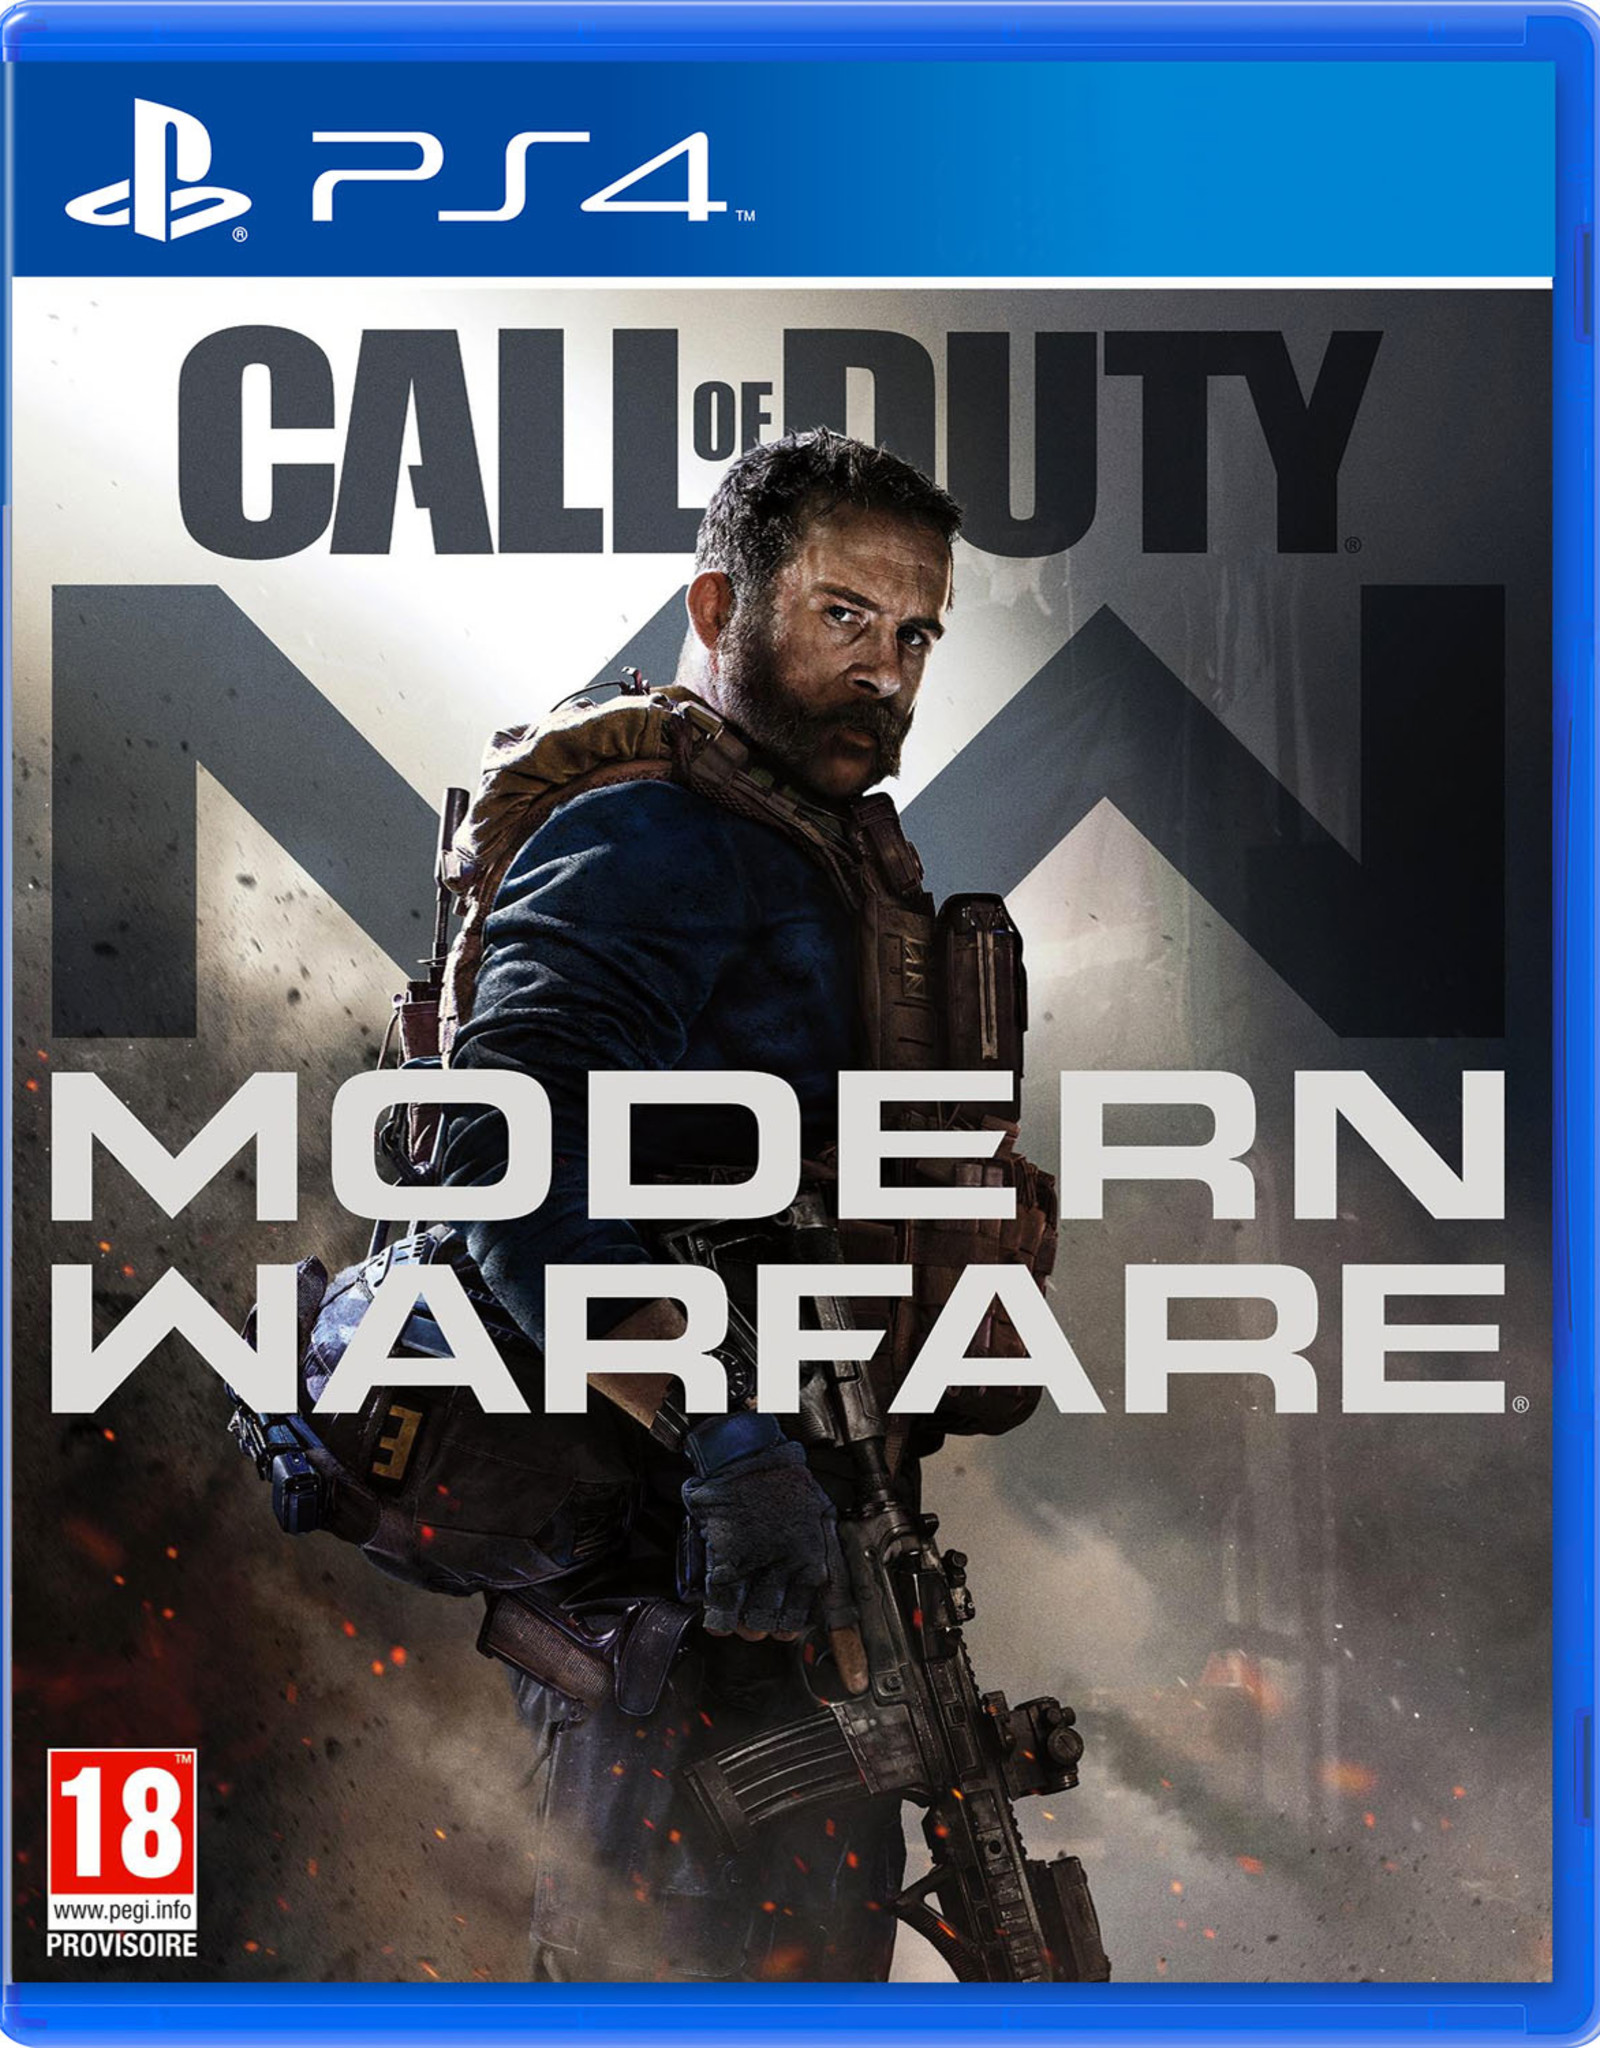 Call of Duty: Modern Warfare (2019) - PS4 NEW